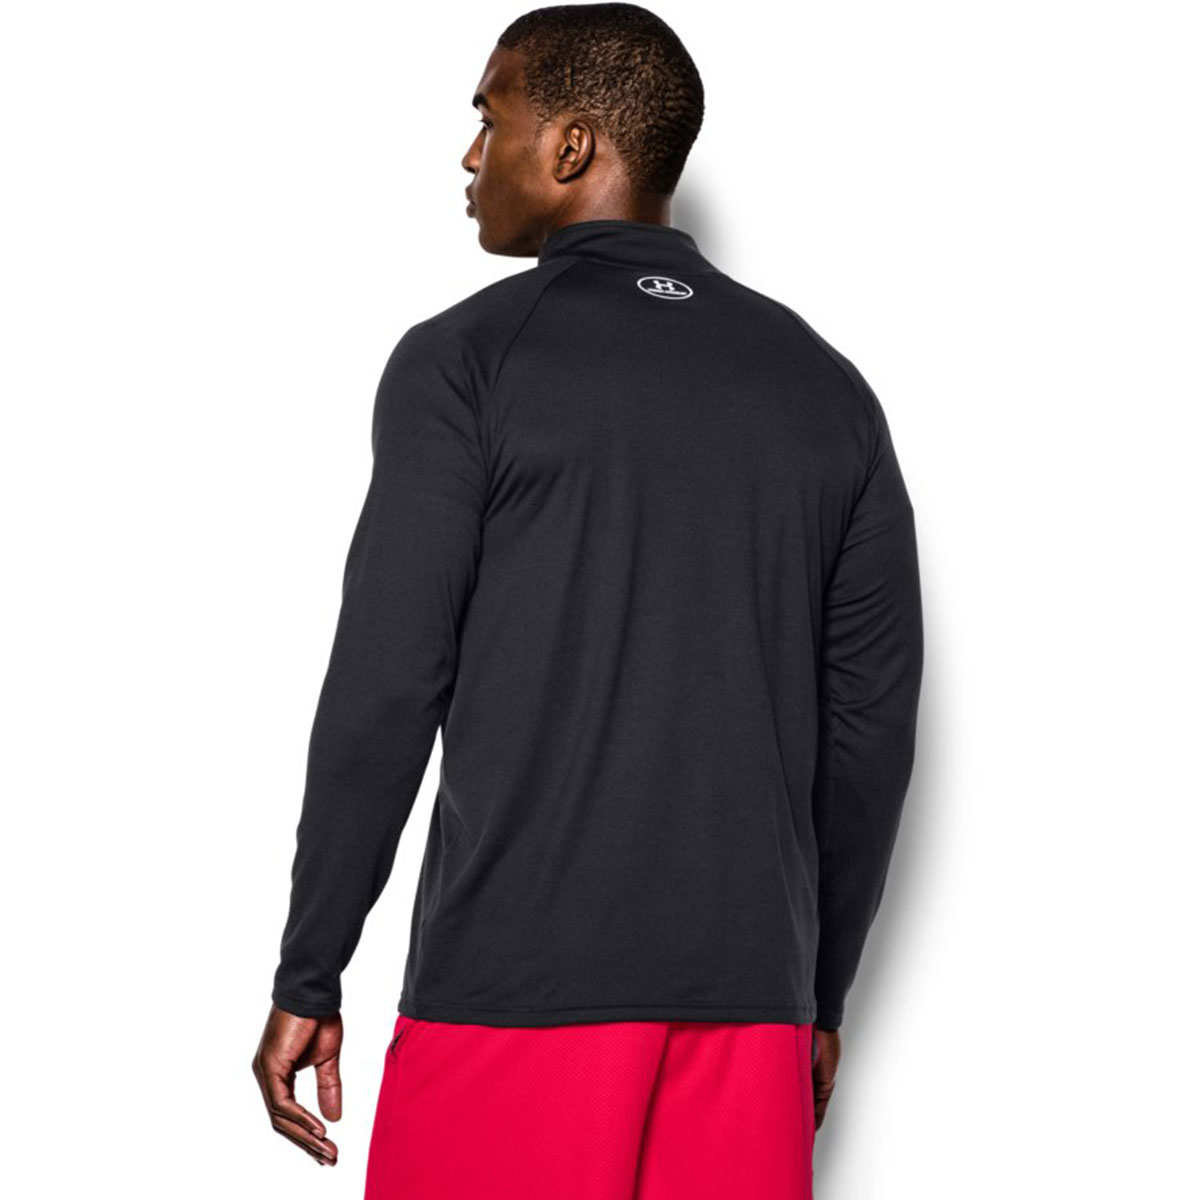 Under-Armour-Mens-UA-Tech-1-4-Zip-Long-Sleeve-Top-Workout-Layer-27-OFF-RRP thumbnail 27